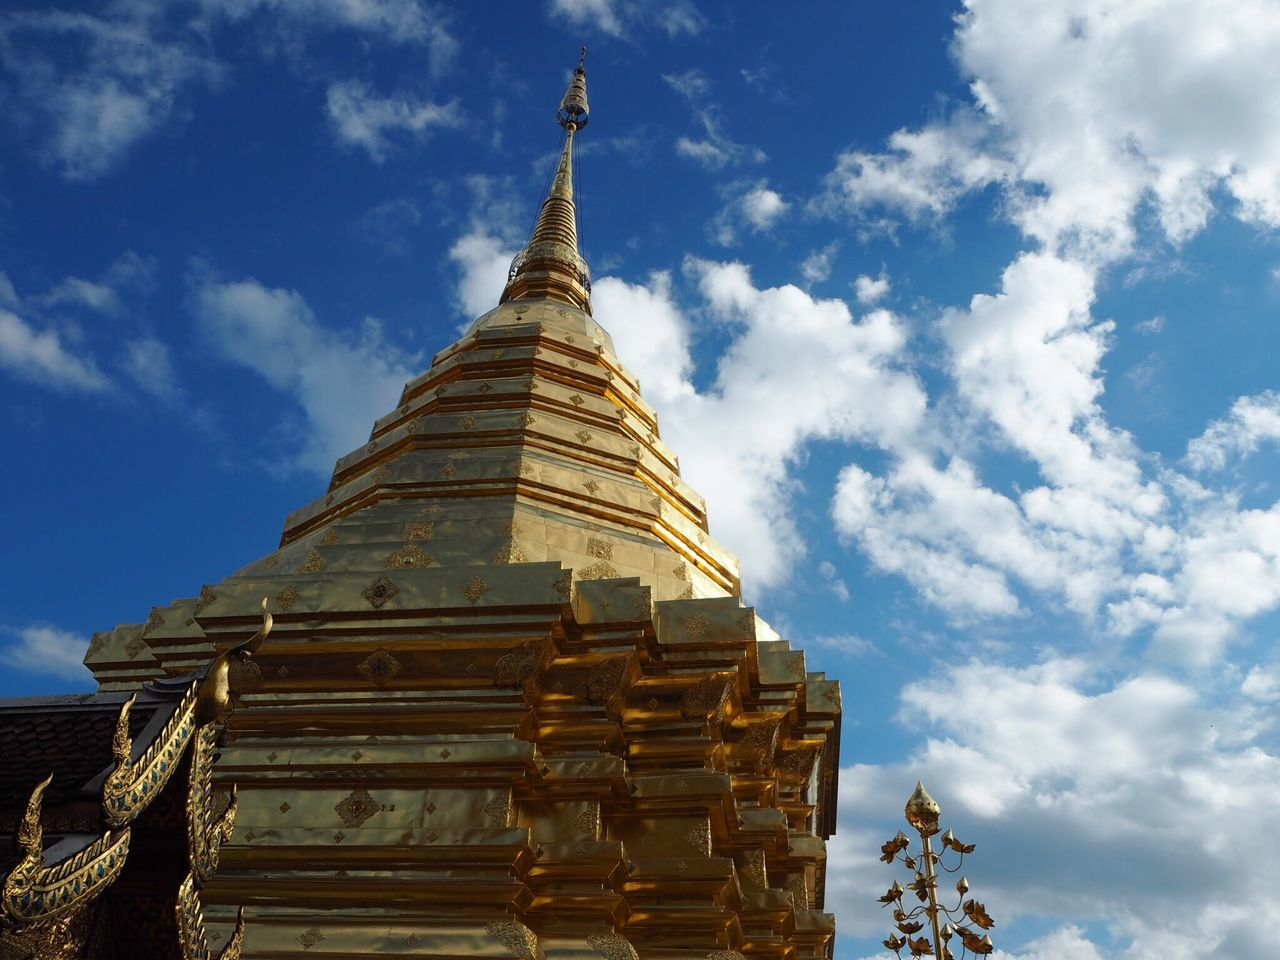 religion, spirituality, place of worship, sky, pagoda, architecture, cloud - sky, built structure, low angle view, building exterior, gold colored, day, no people, gold, outdoors, ancient, travel destinations